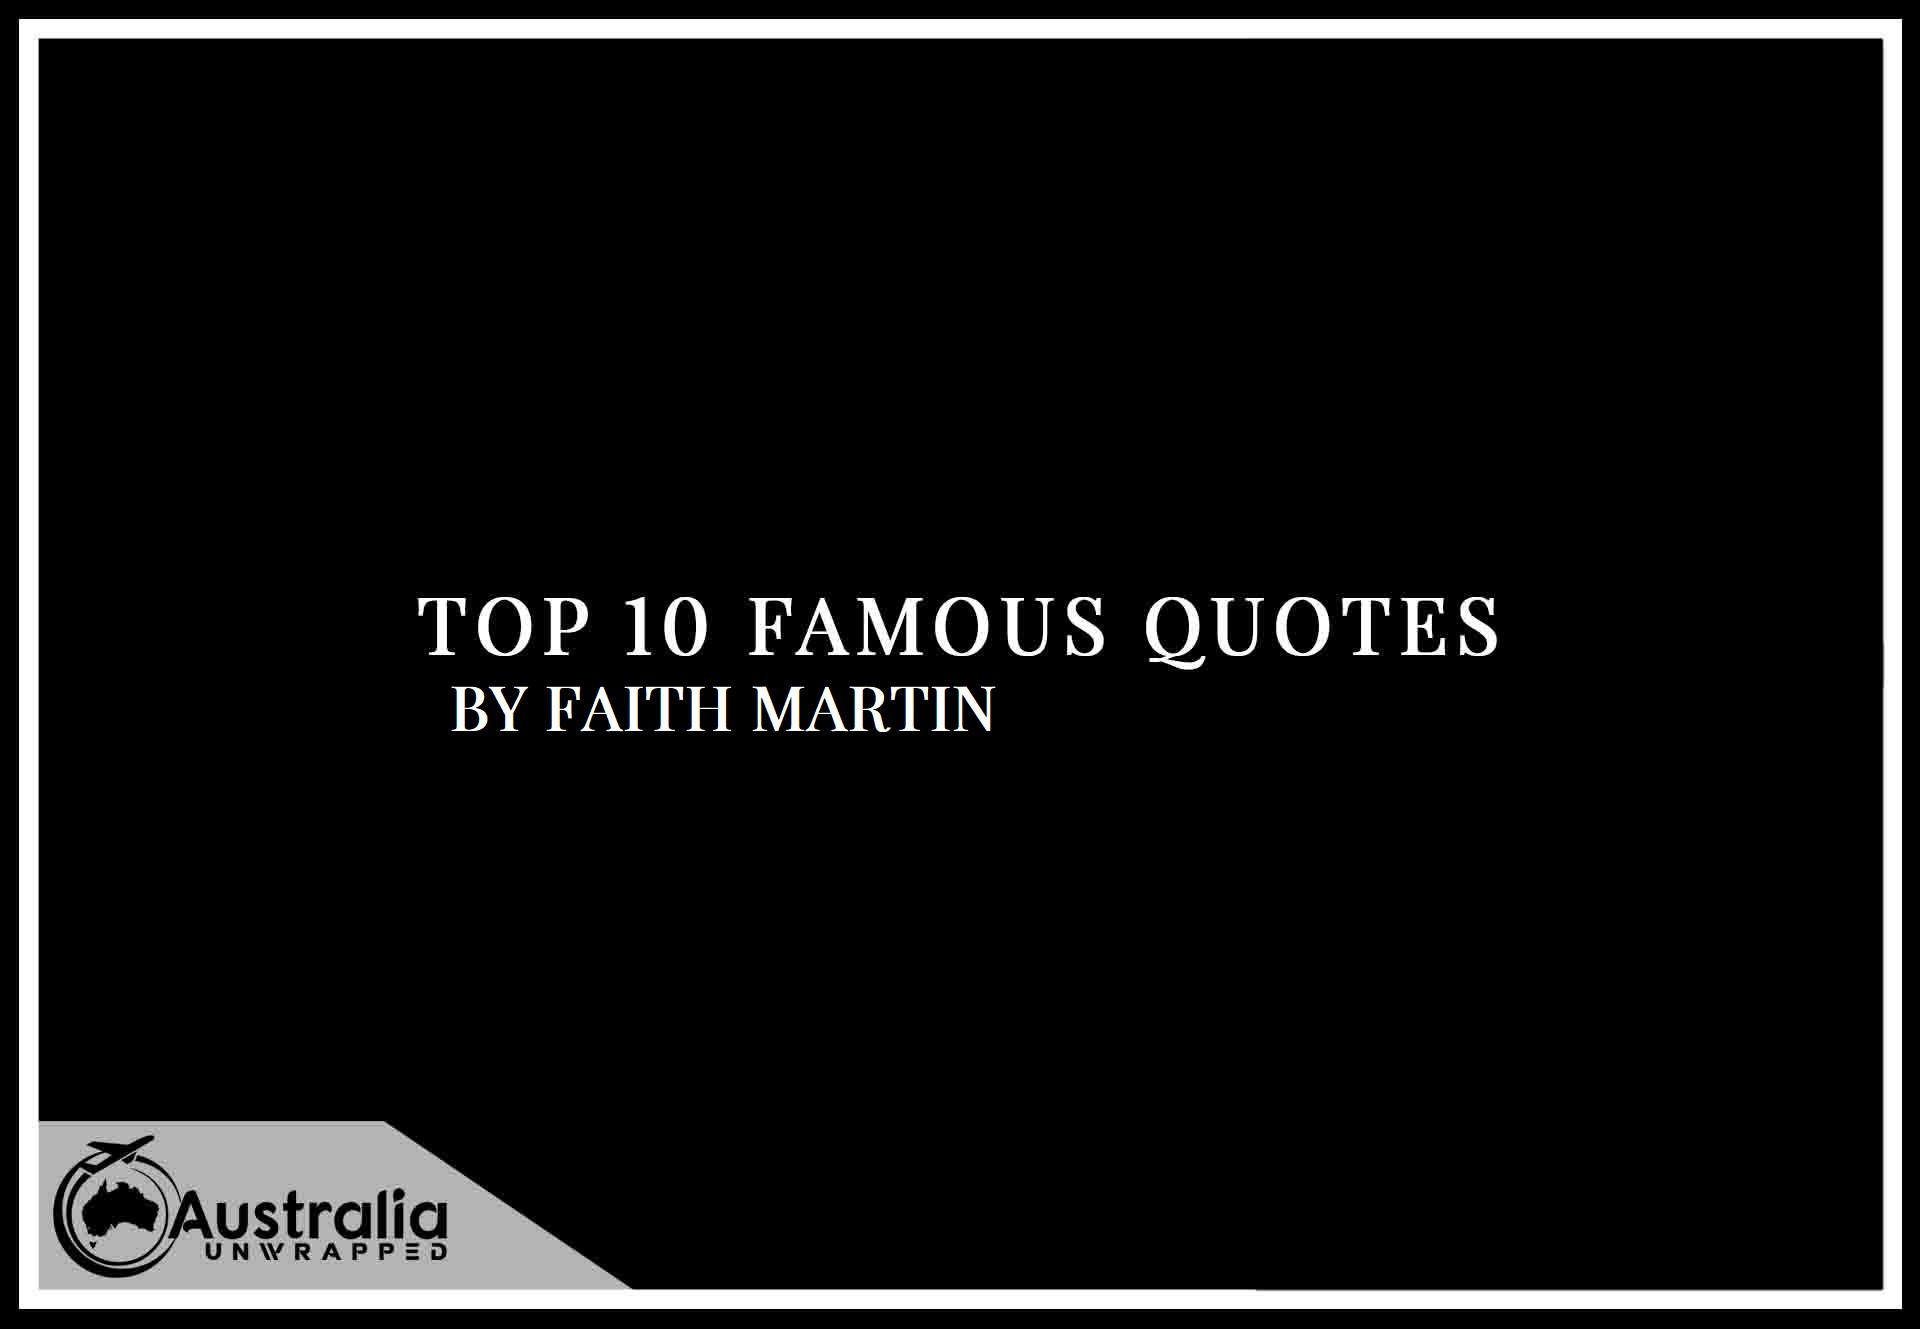 Top 10 Famous Quotes by Author Faith Martin